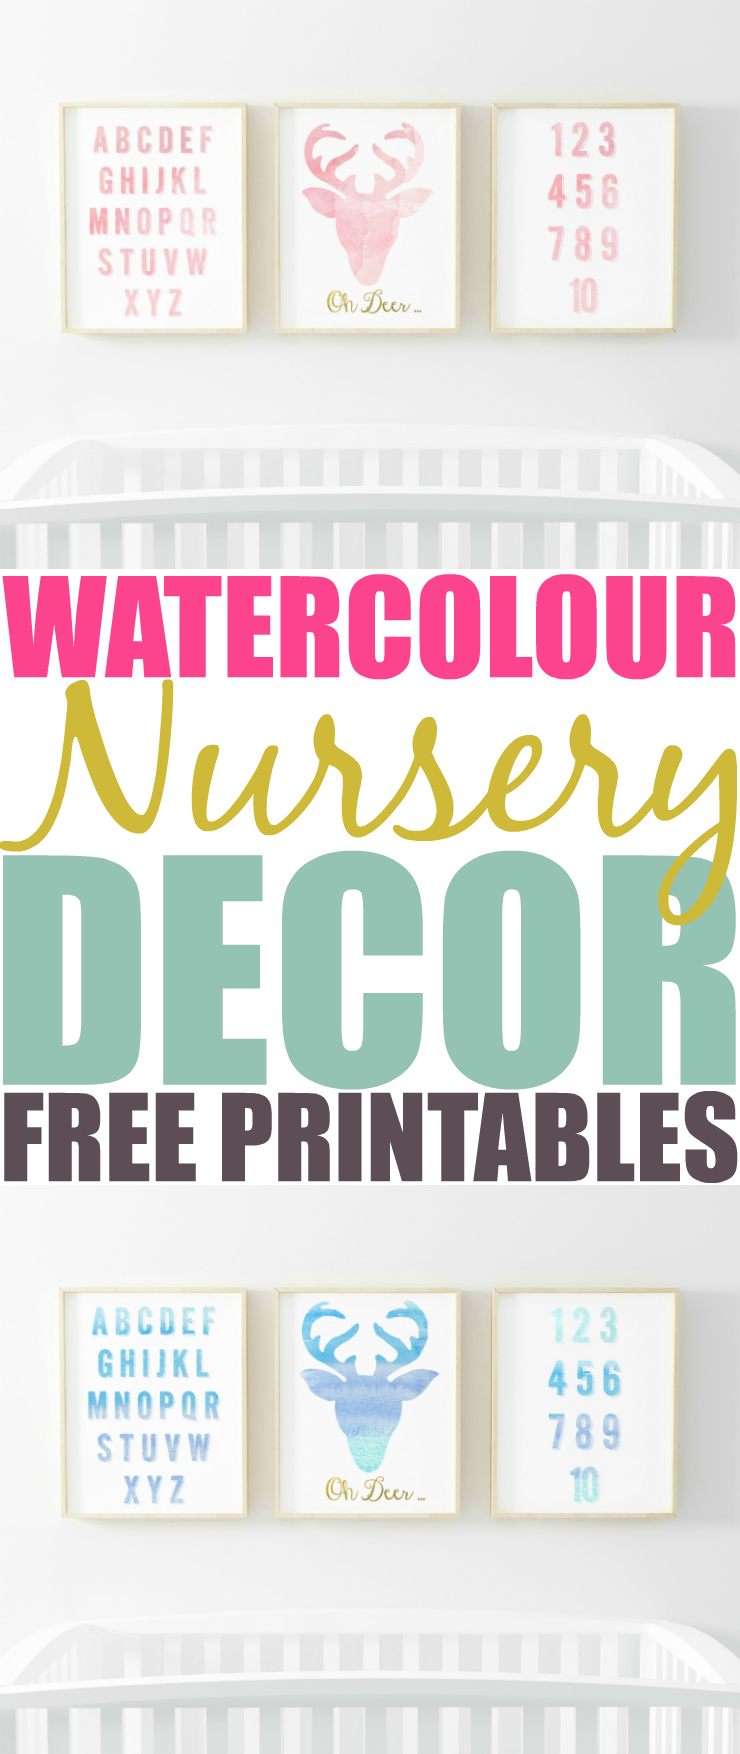 Watercolour Nursery Decor Main Pinterest